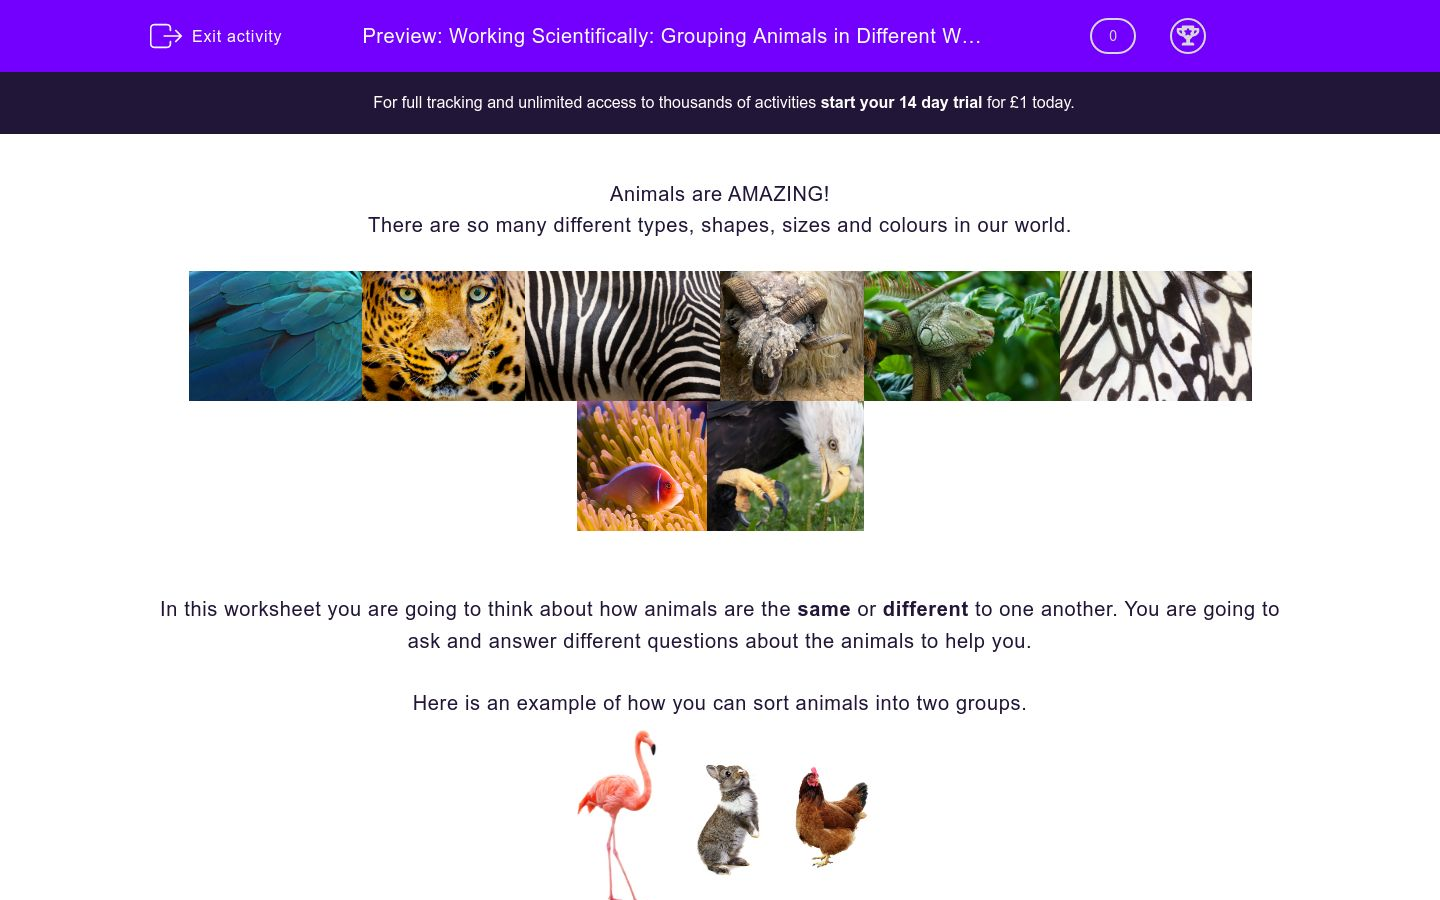 'Working Scientifically: Grouping Animals in Different Ways 3' worksheet